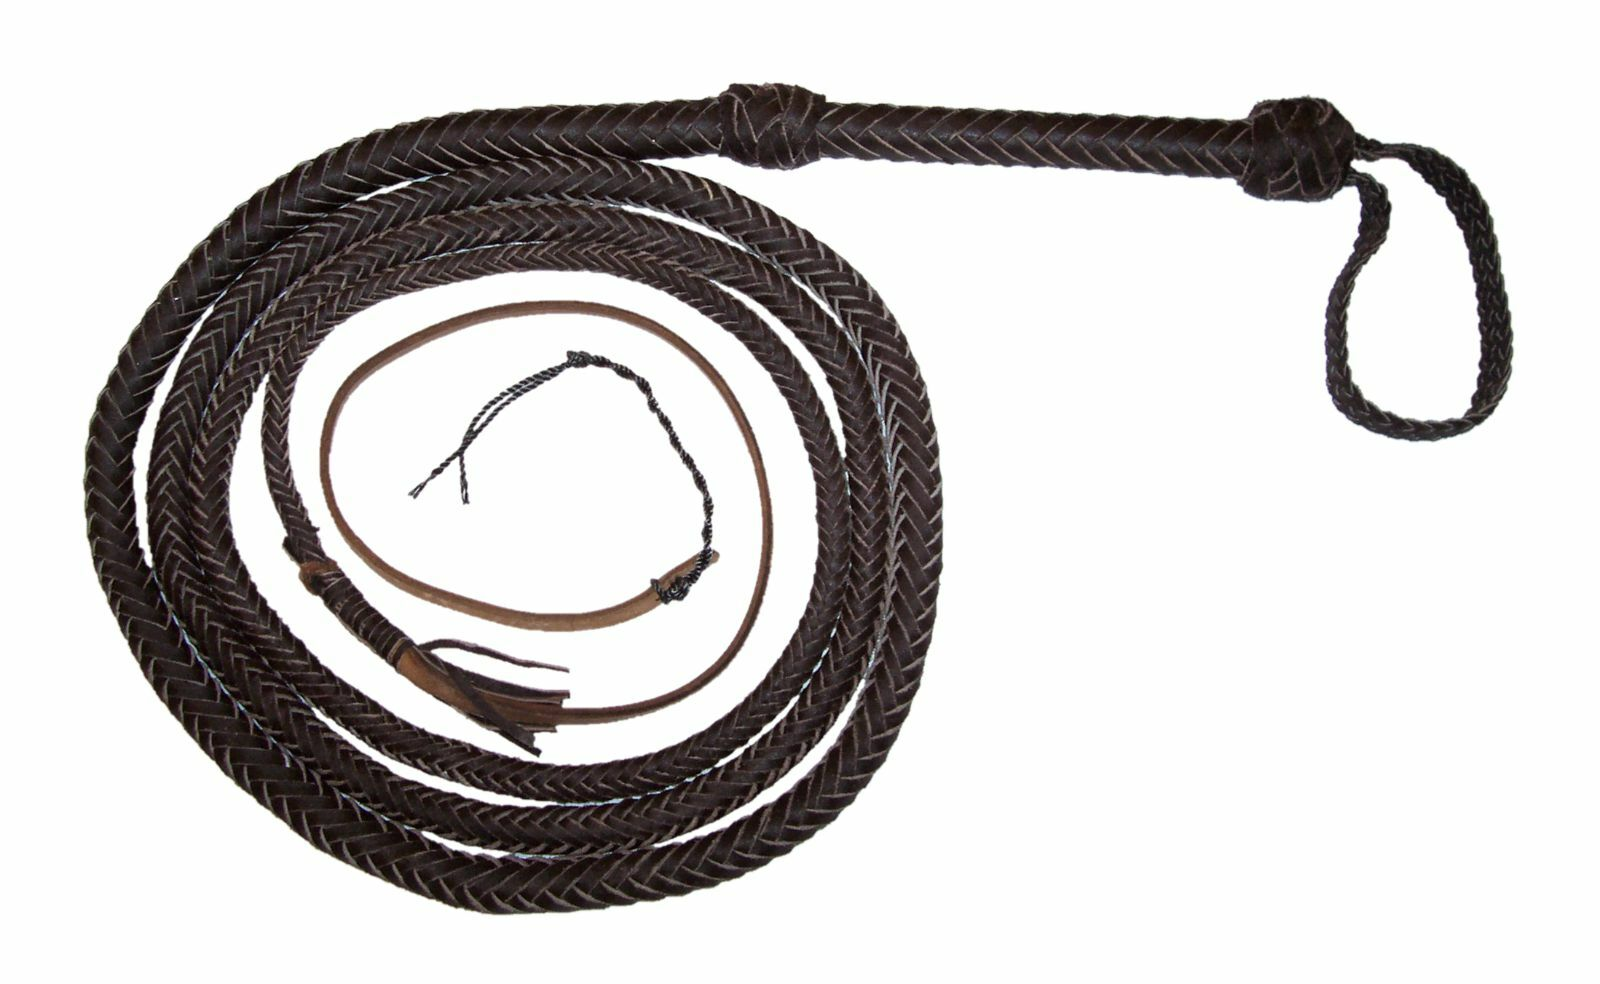 10 ft 12p Dark Brown Real Leather Bullwhip Indiana Jones Action Bull whip